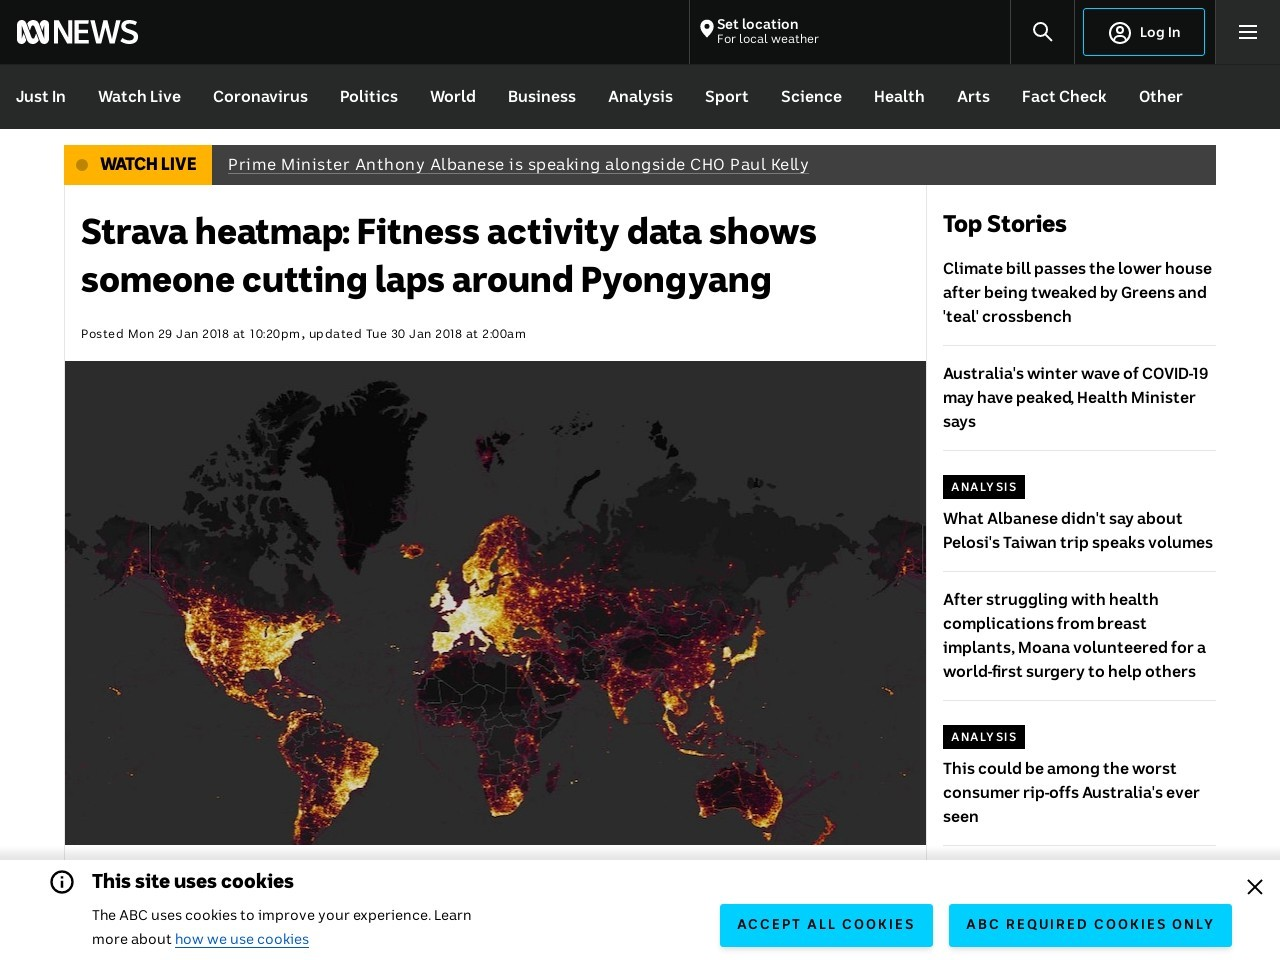 Strava heatmap: Fitness activity data shows someone cutting laps…